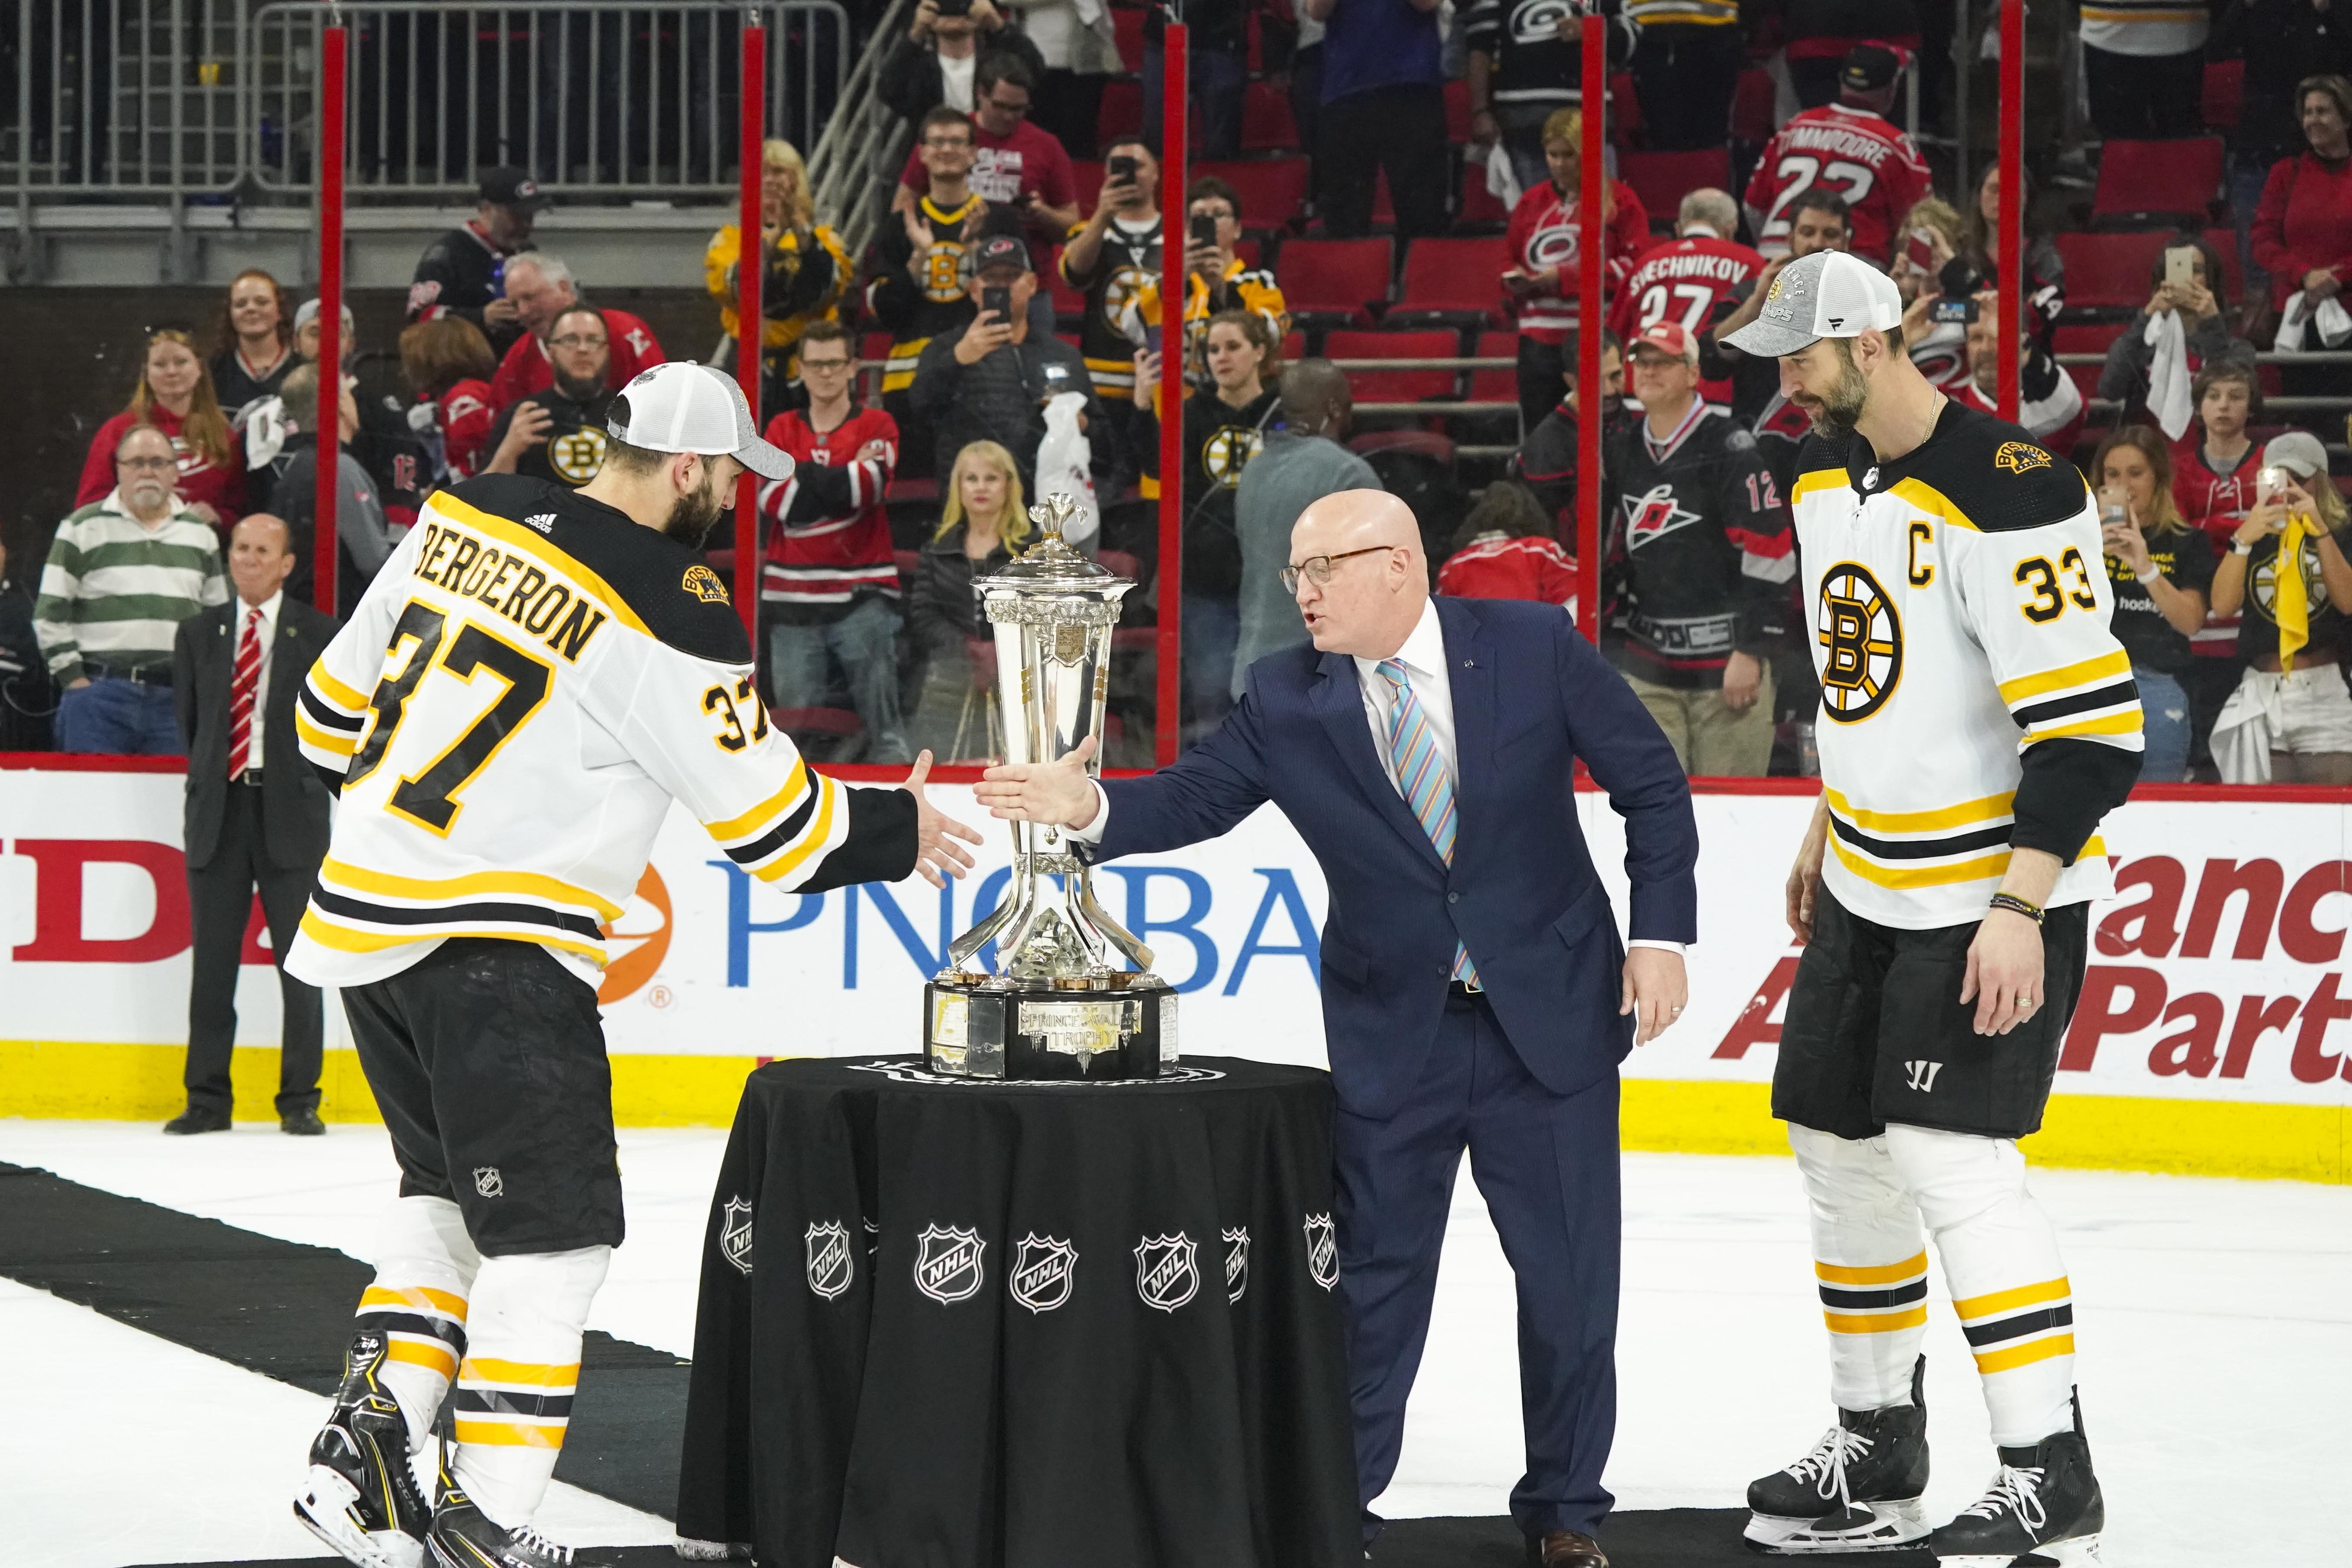 May 16, 2019; Raleigh, NC, USA; Boston Bruins center Patrice Bergeron and defenseman Zdeno Chara are congratulated by NHL deputy Commissioner Bill Daly after defeating the Carolina Hurricanes in Game 4 of the Eastern Conference Final of the 2019 Stanley C